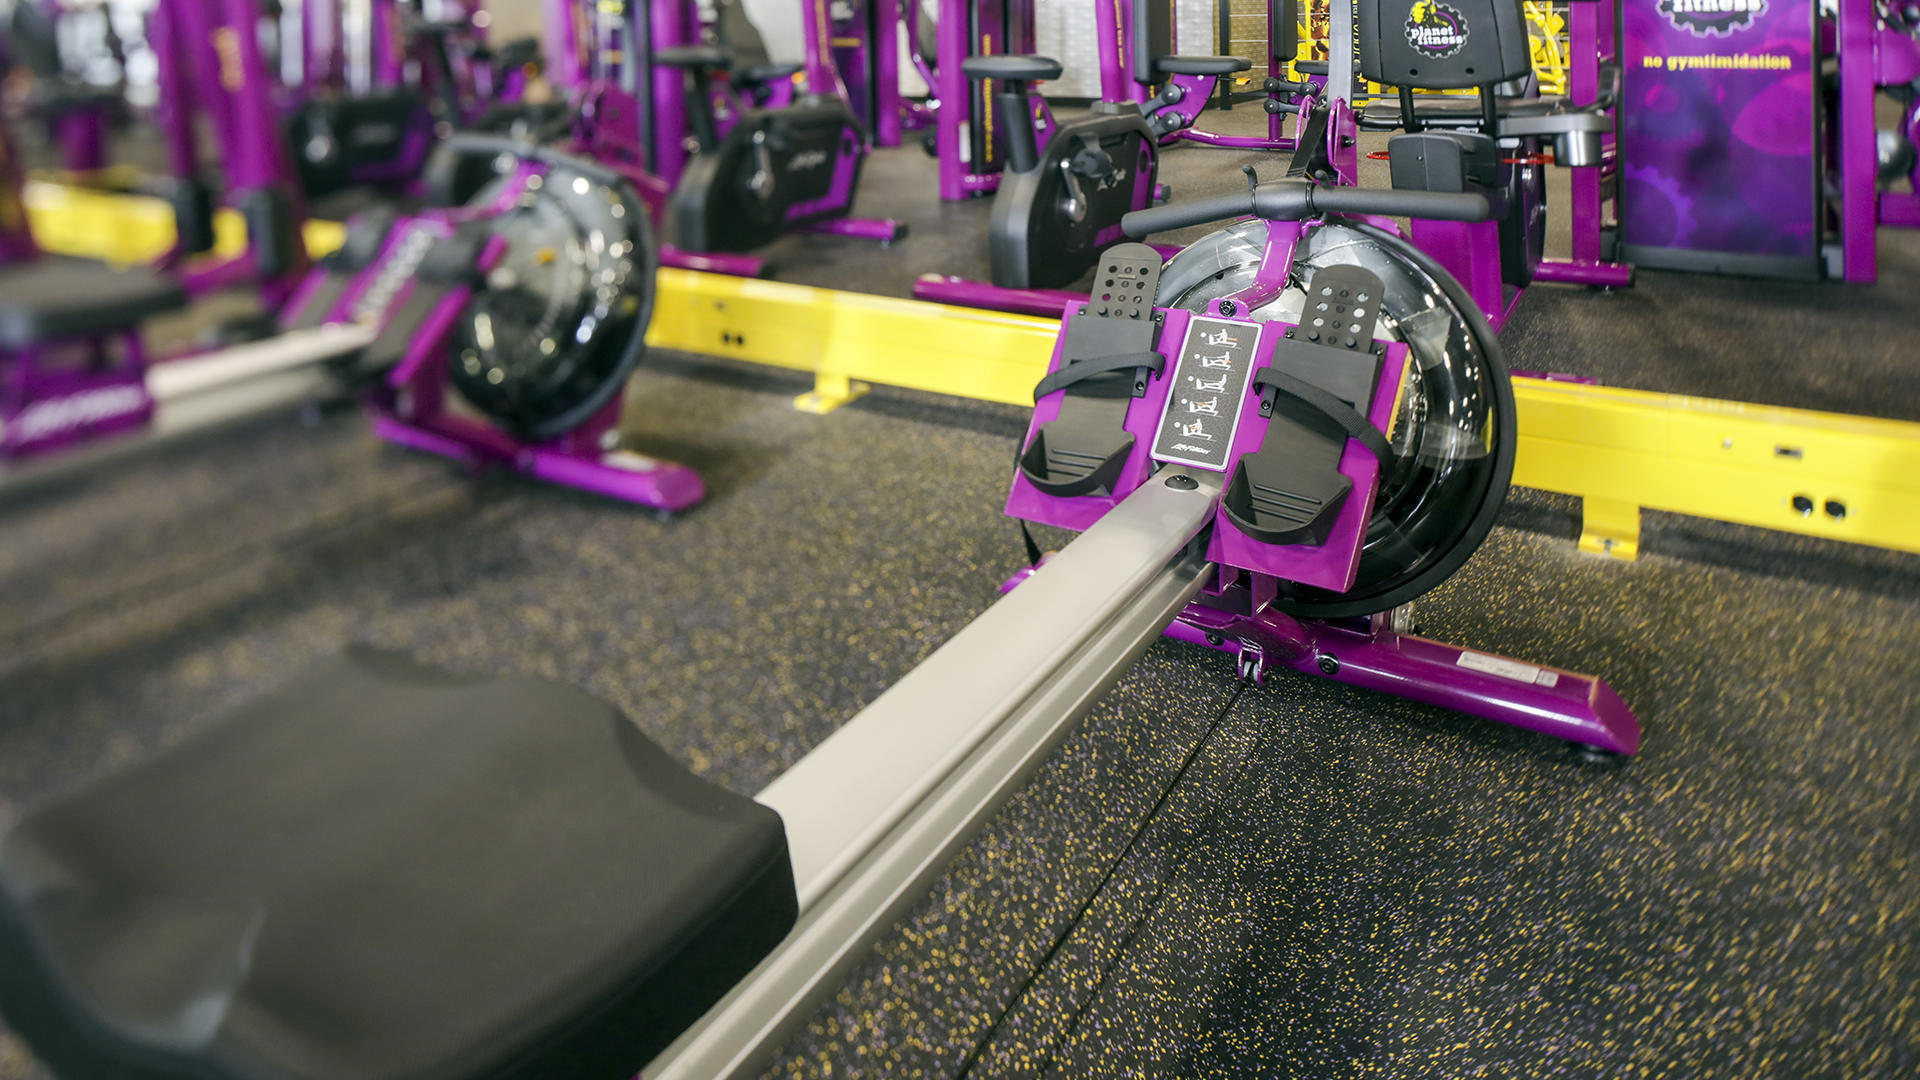 Planet Fitness Chest Machines - Year of Clean Water